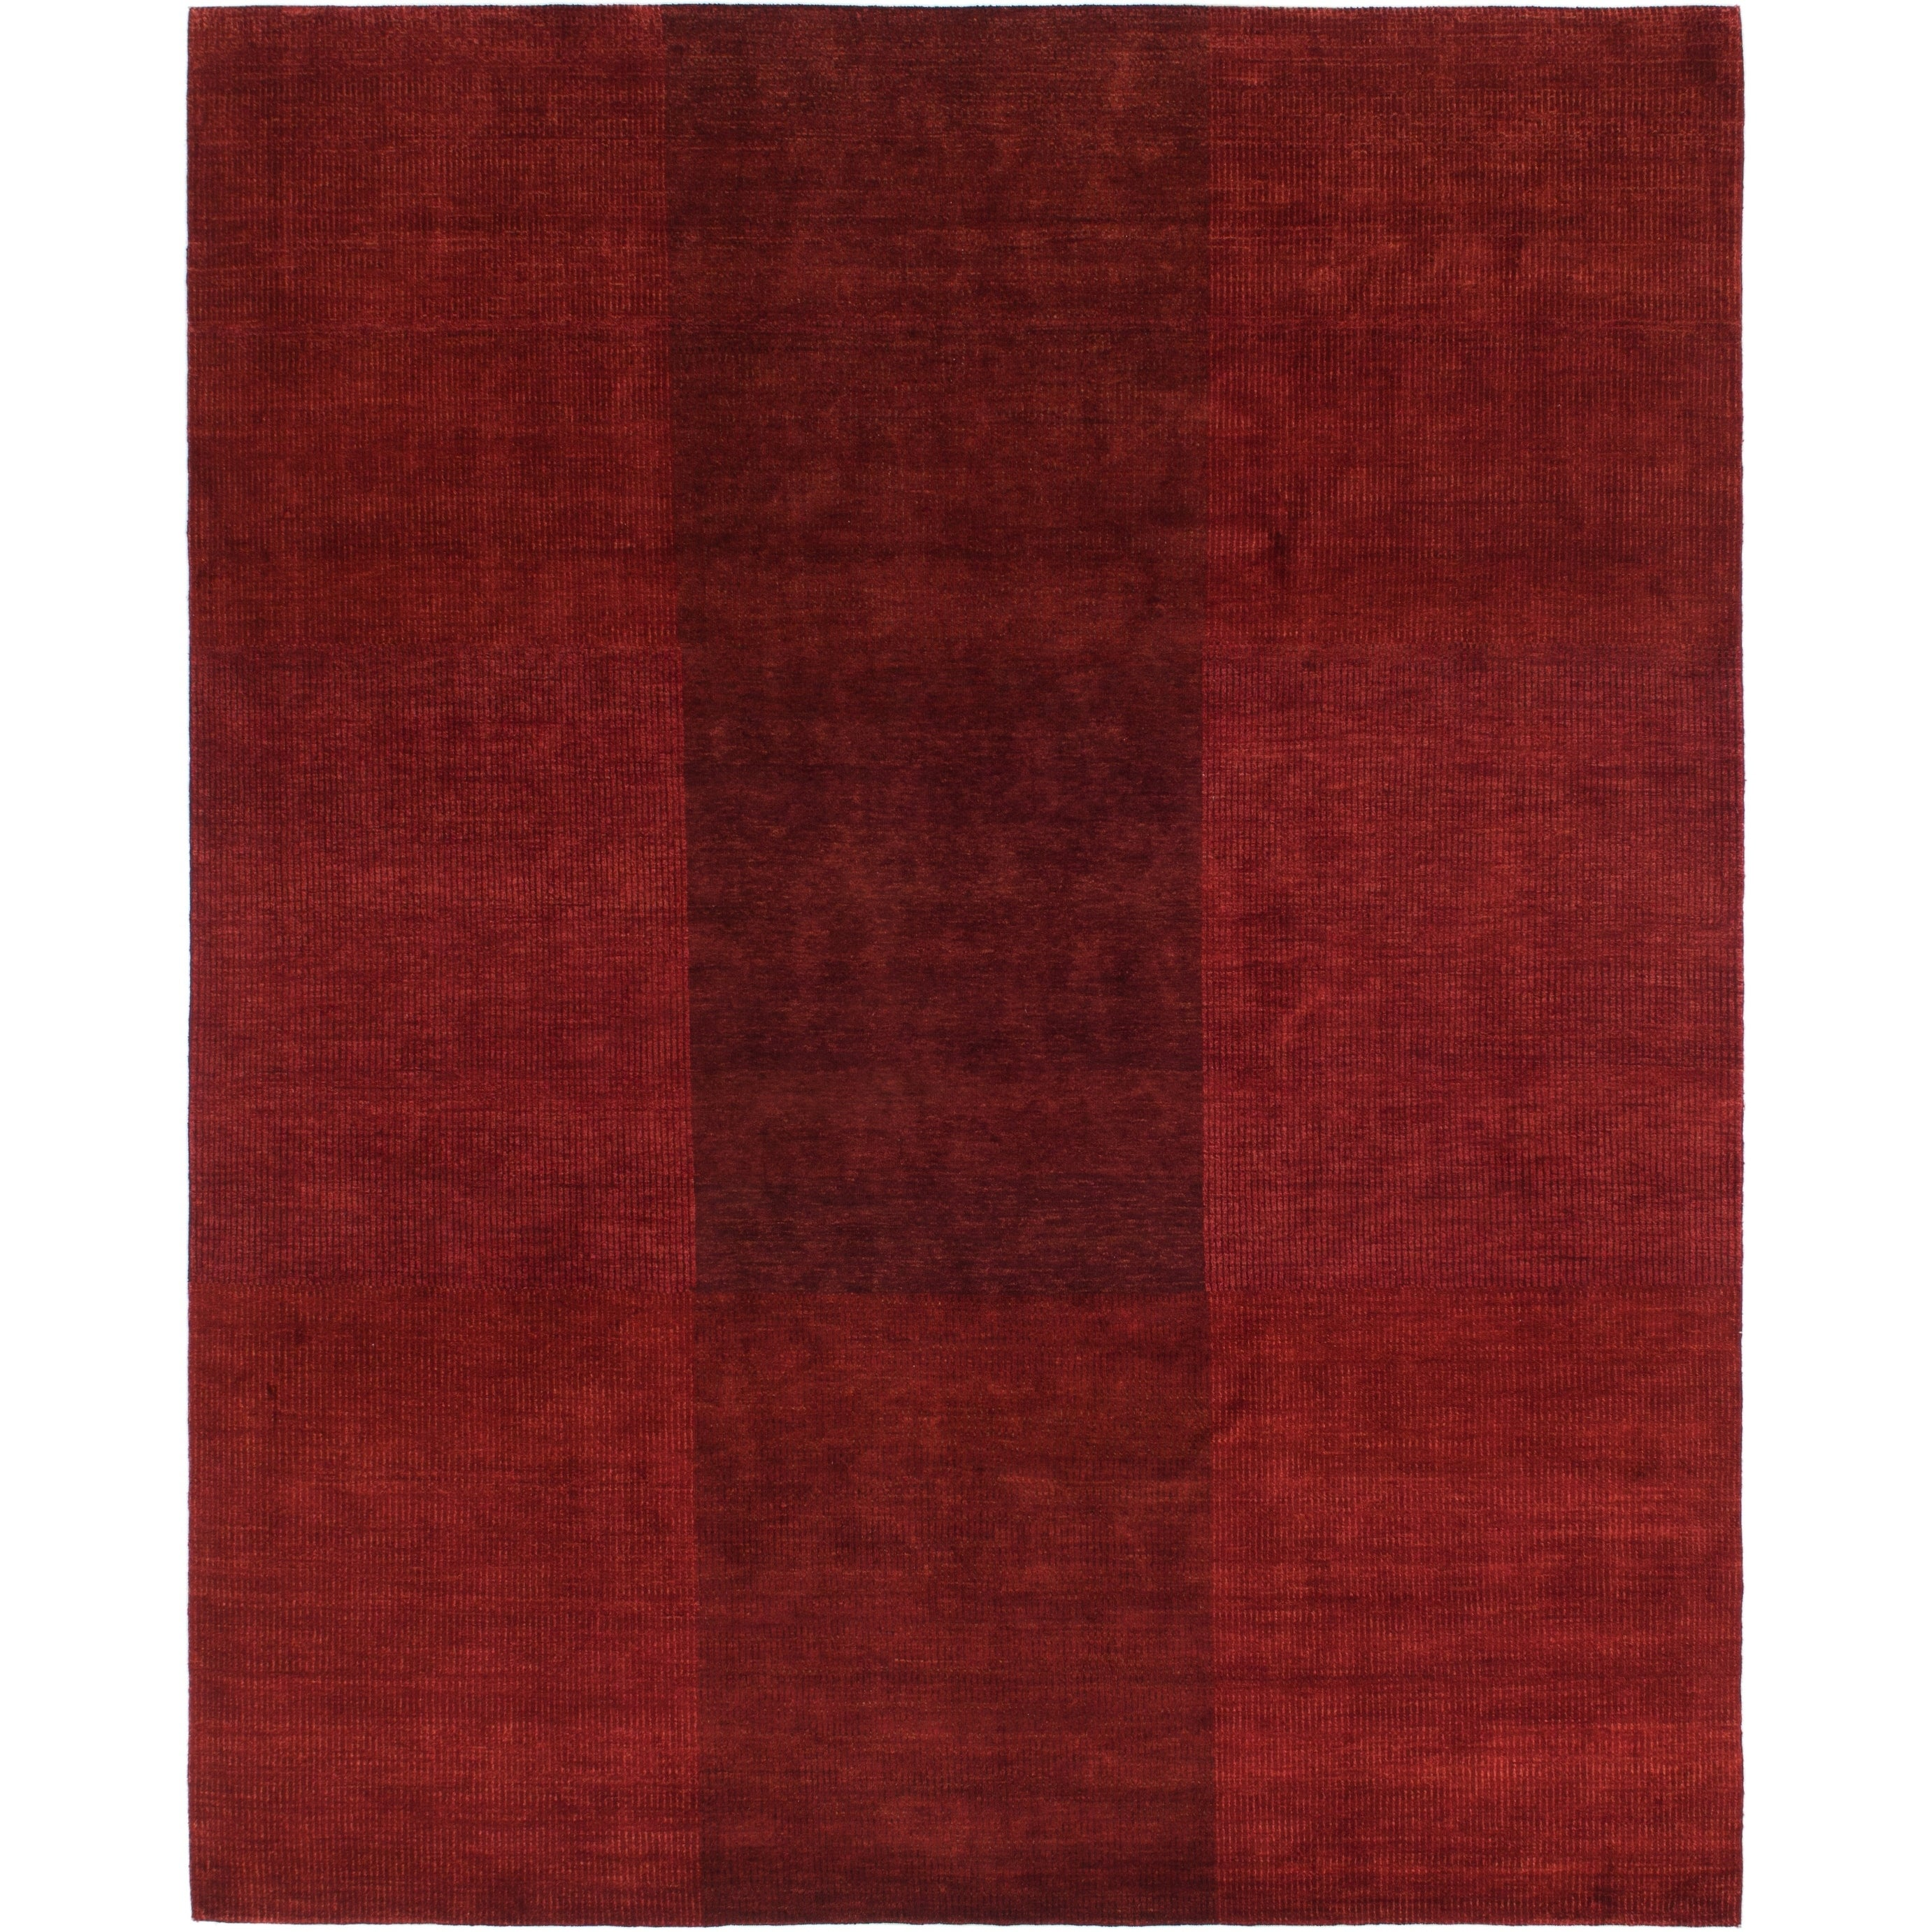 Hand Knotted Kashkuli Gabbeh Wool Area Rug - 8 2 x 10 (Burgundy - 8 2 x 10)